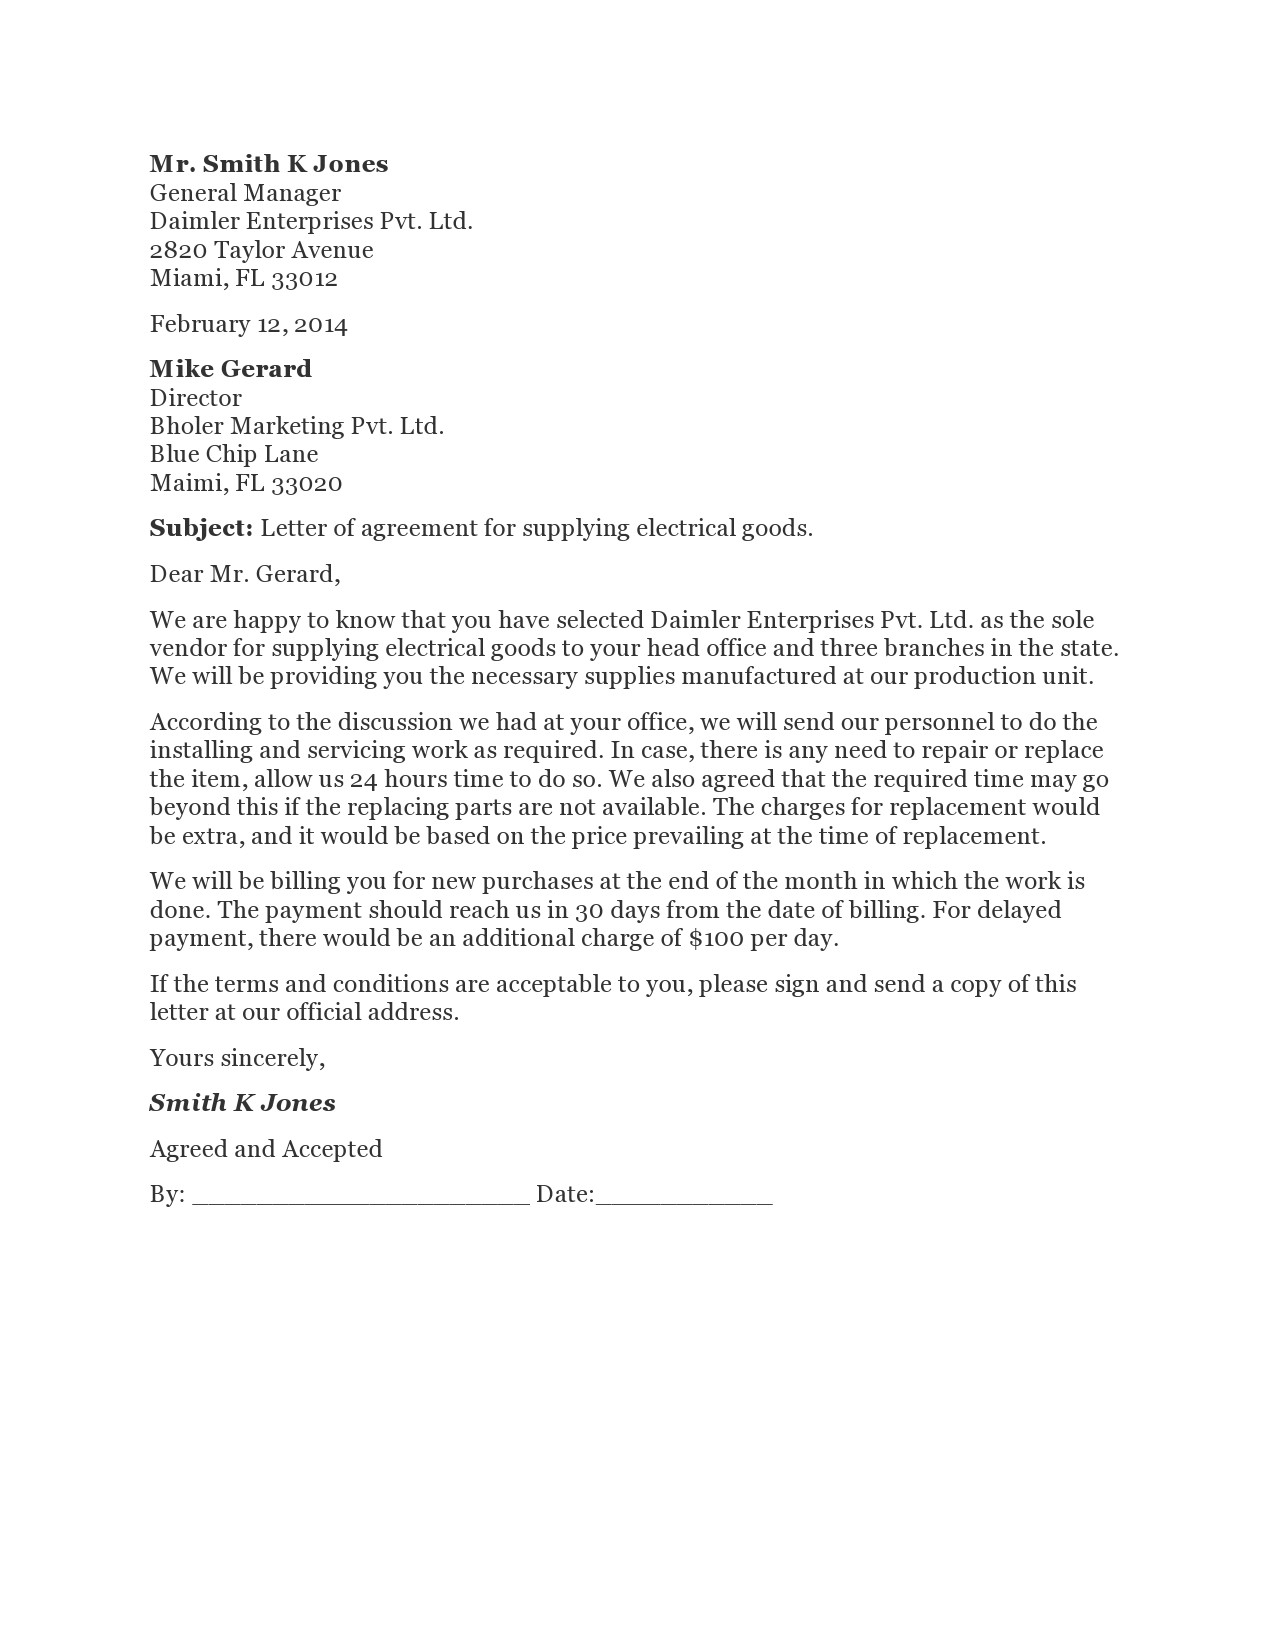 Free letter of agreement 08